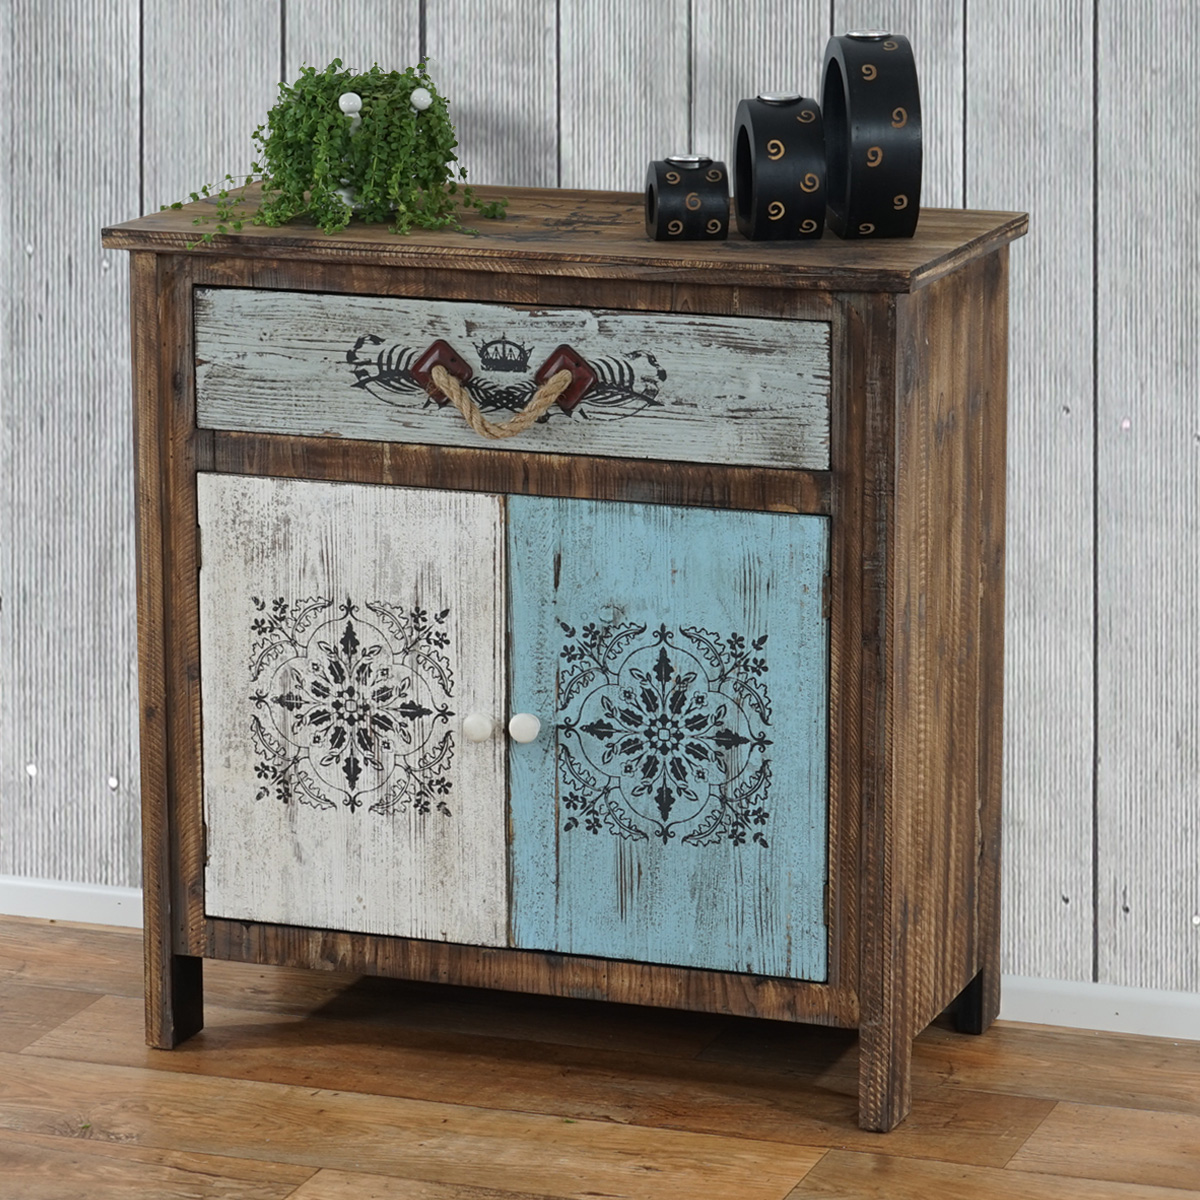 kommode funchal schubladenkommode schrank shabby look vintage 84x80x40cm. Black Bedroom Furniture Sets. Home Design Ideas